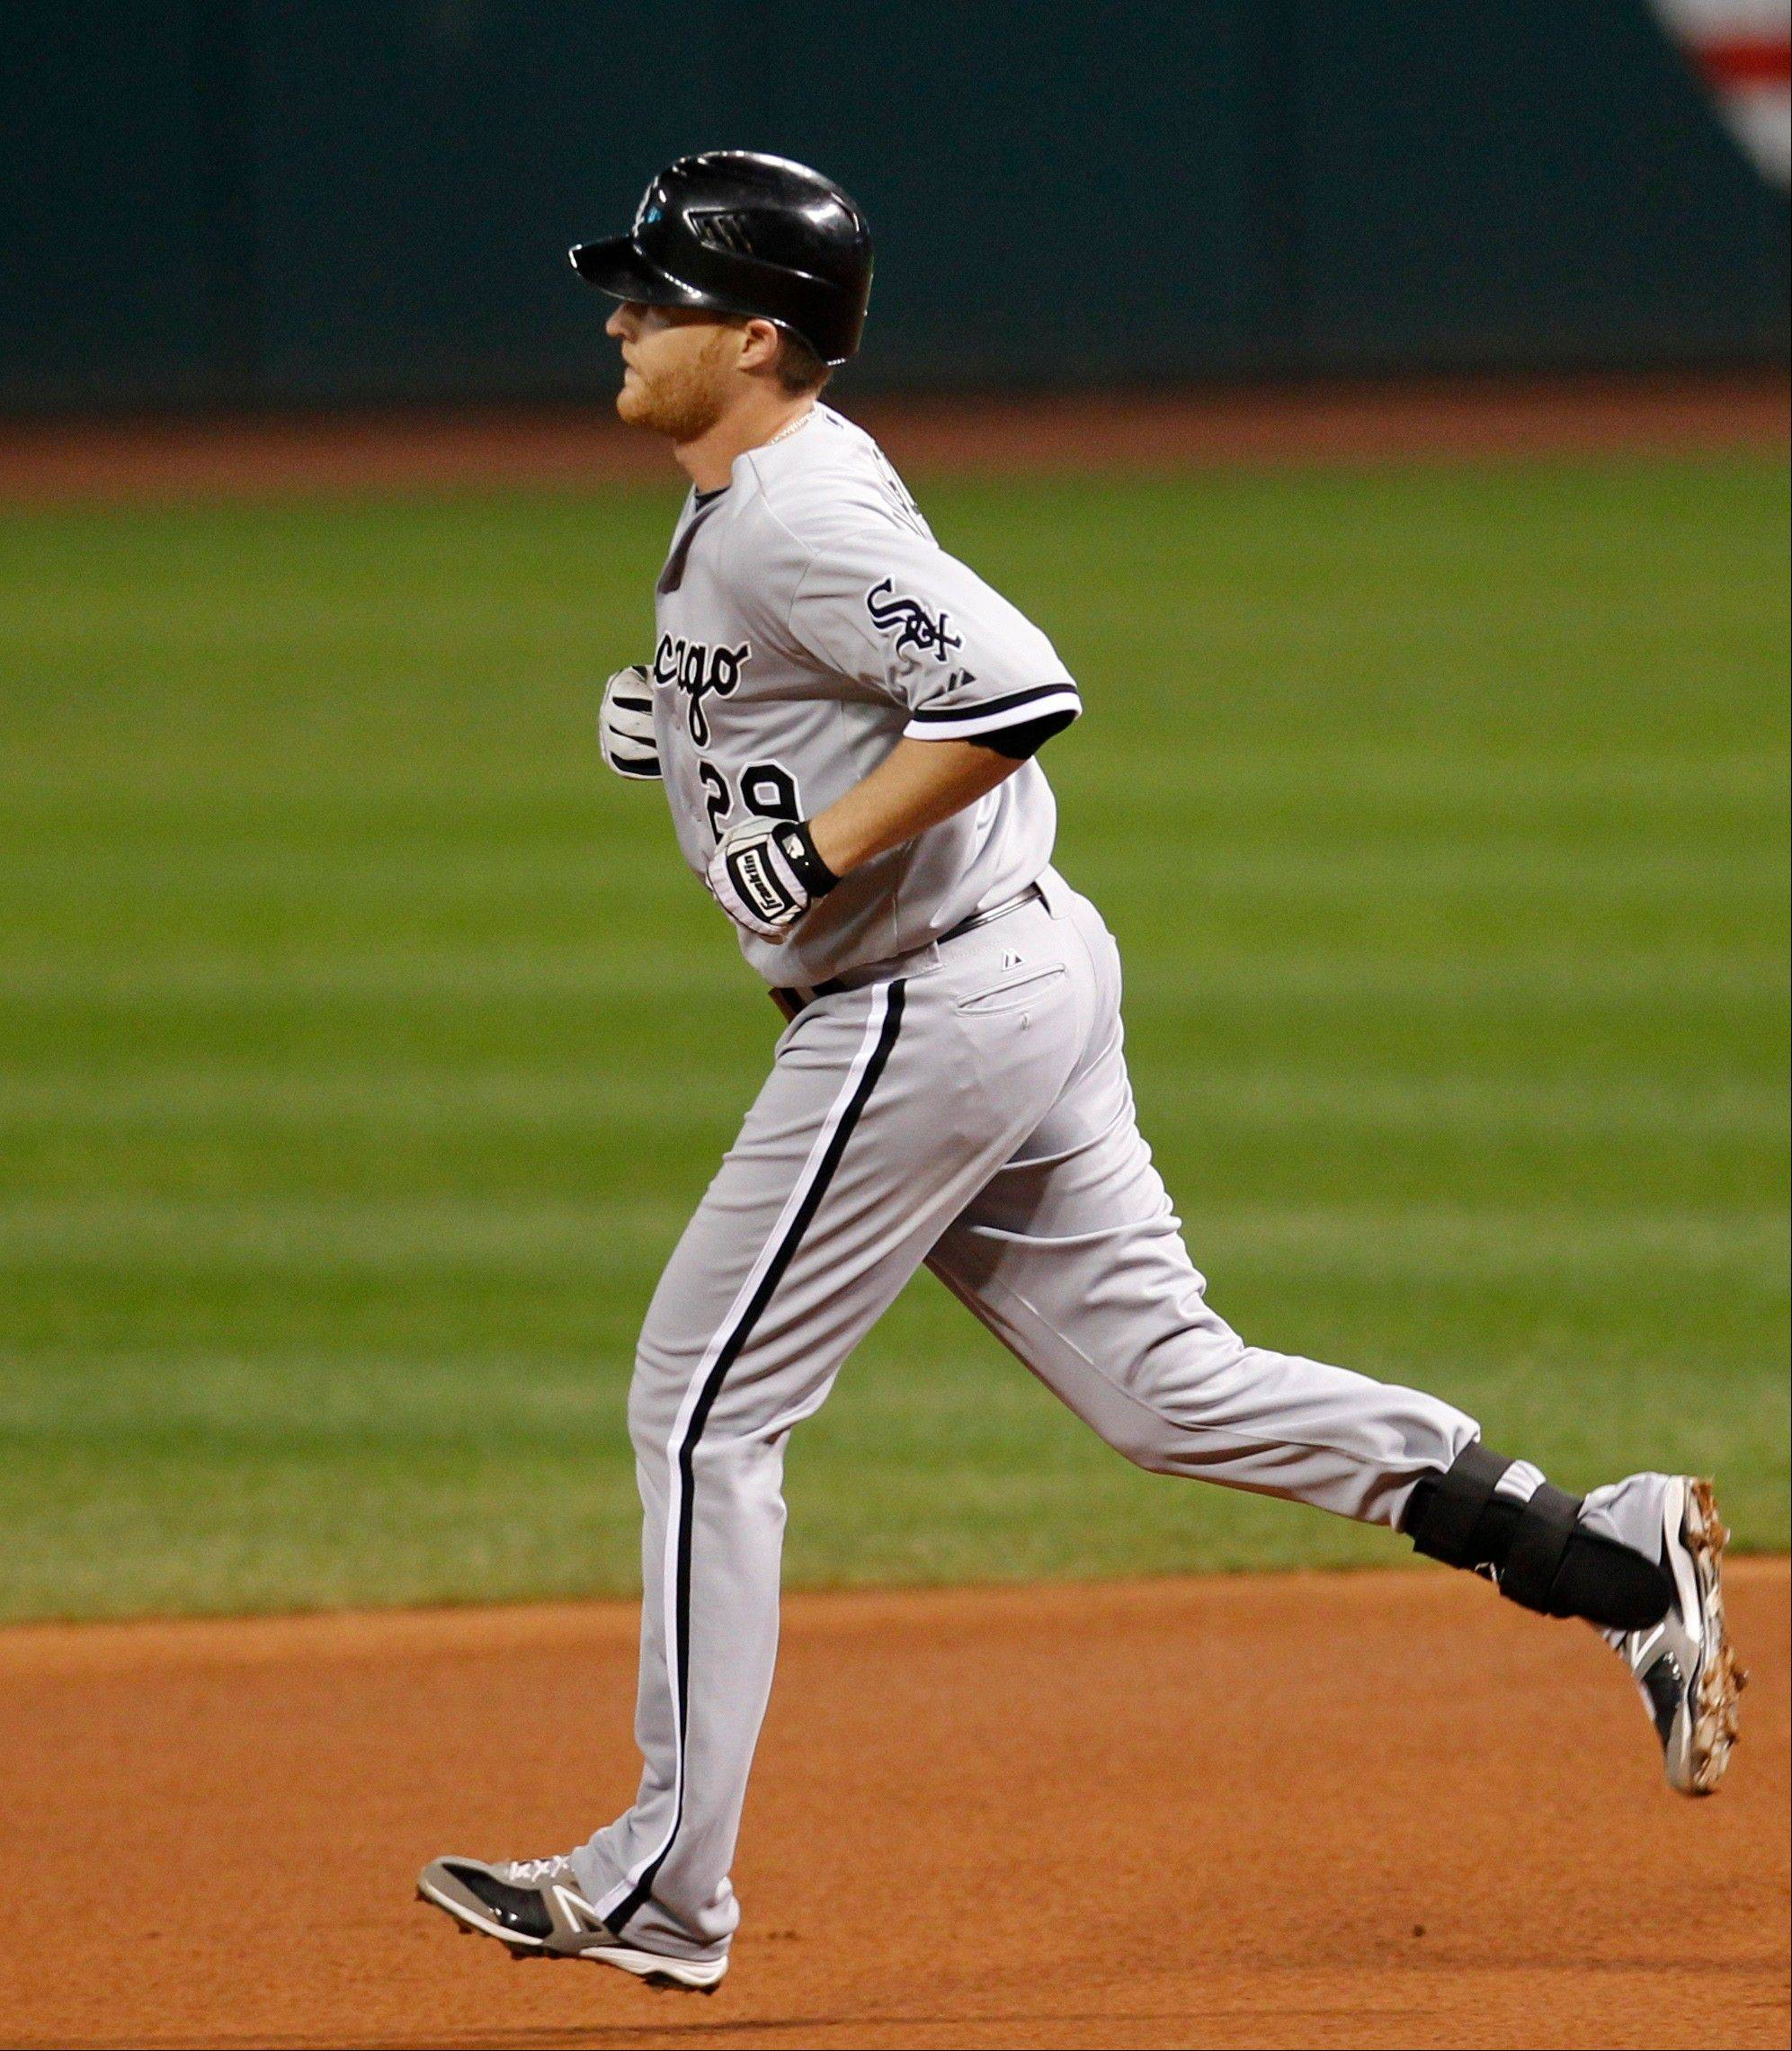 Chicago White Sox's Dan Johnson runs the bases after hitting a two-run home run off Cleveland Indians starting pitcher David Huff in the second inning of a baseball game, Wednesday, Oct. 3, 2012, in Cleveland. Dayan Viciedo scored. The White Sox won 9-0. (AP Photo/Tony Dejak)